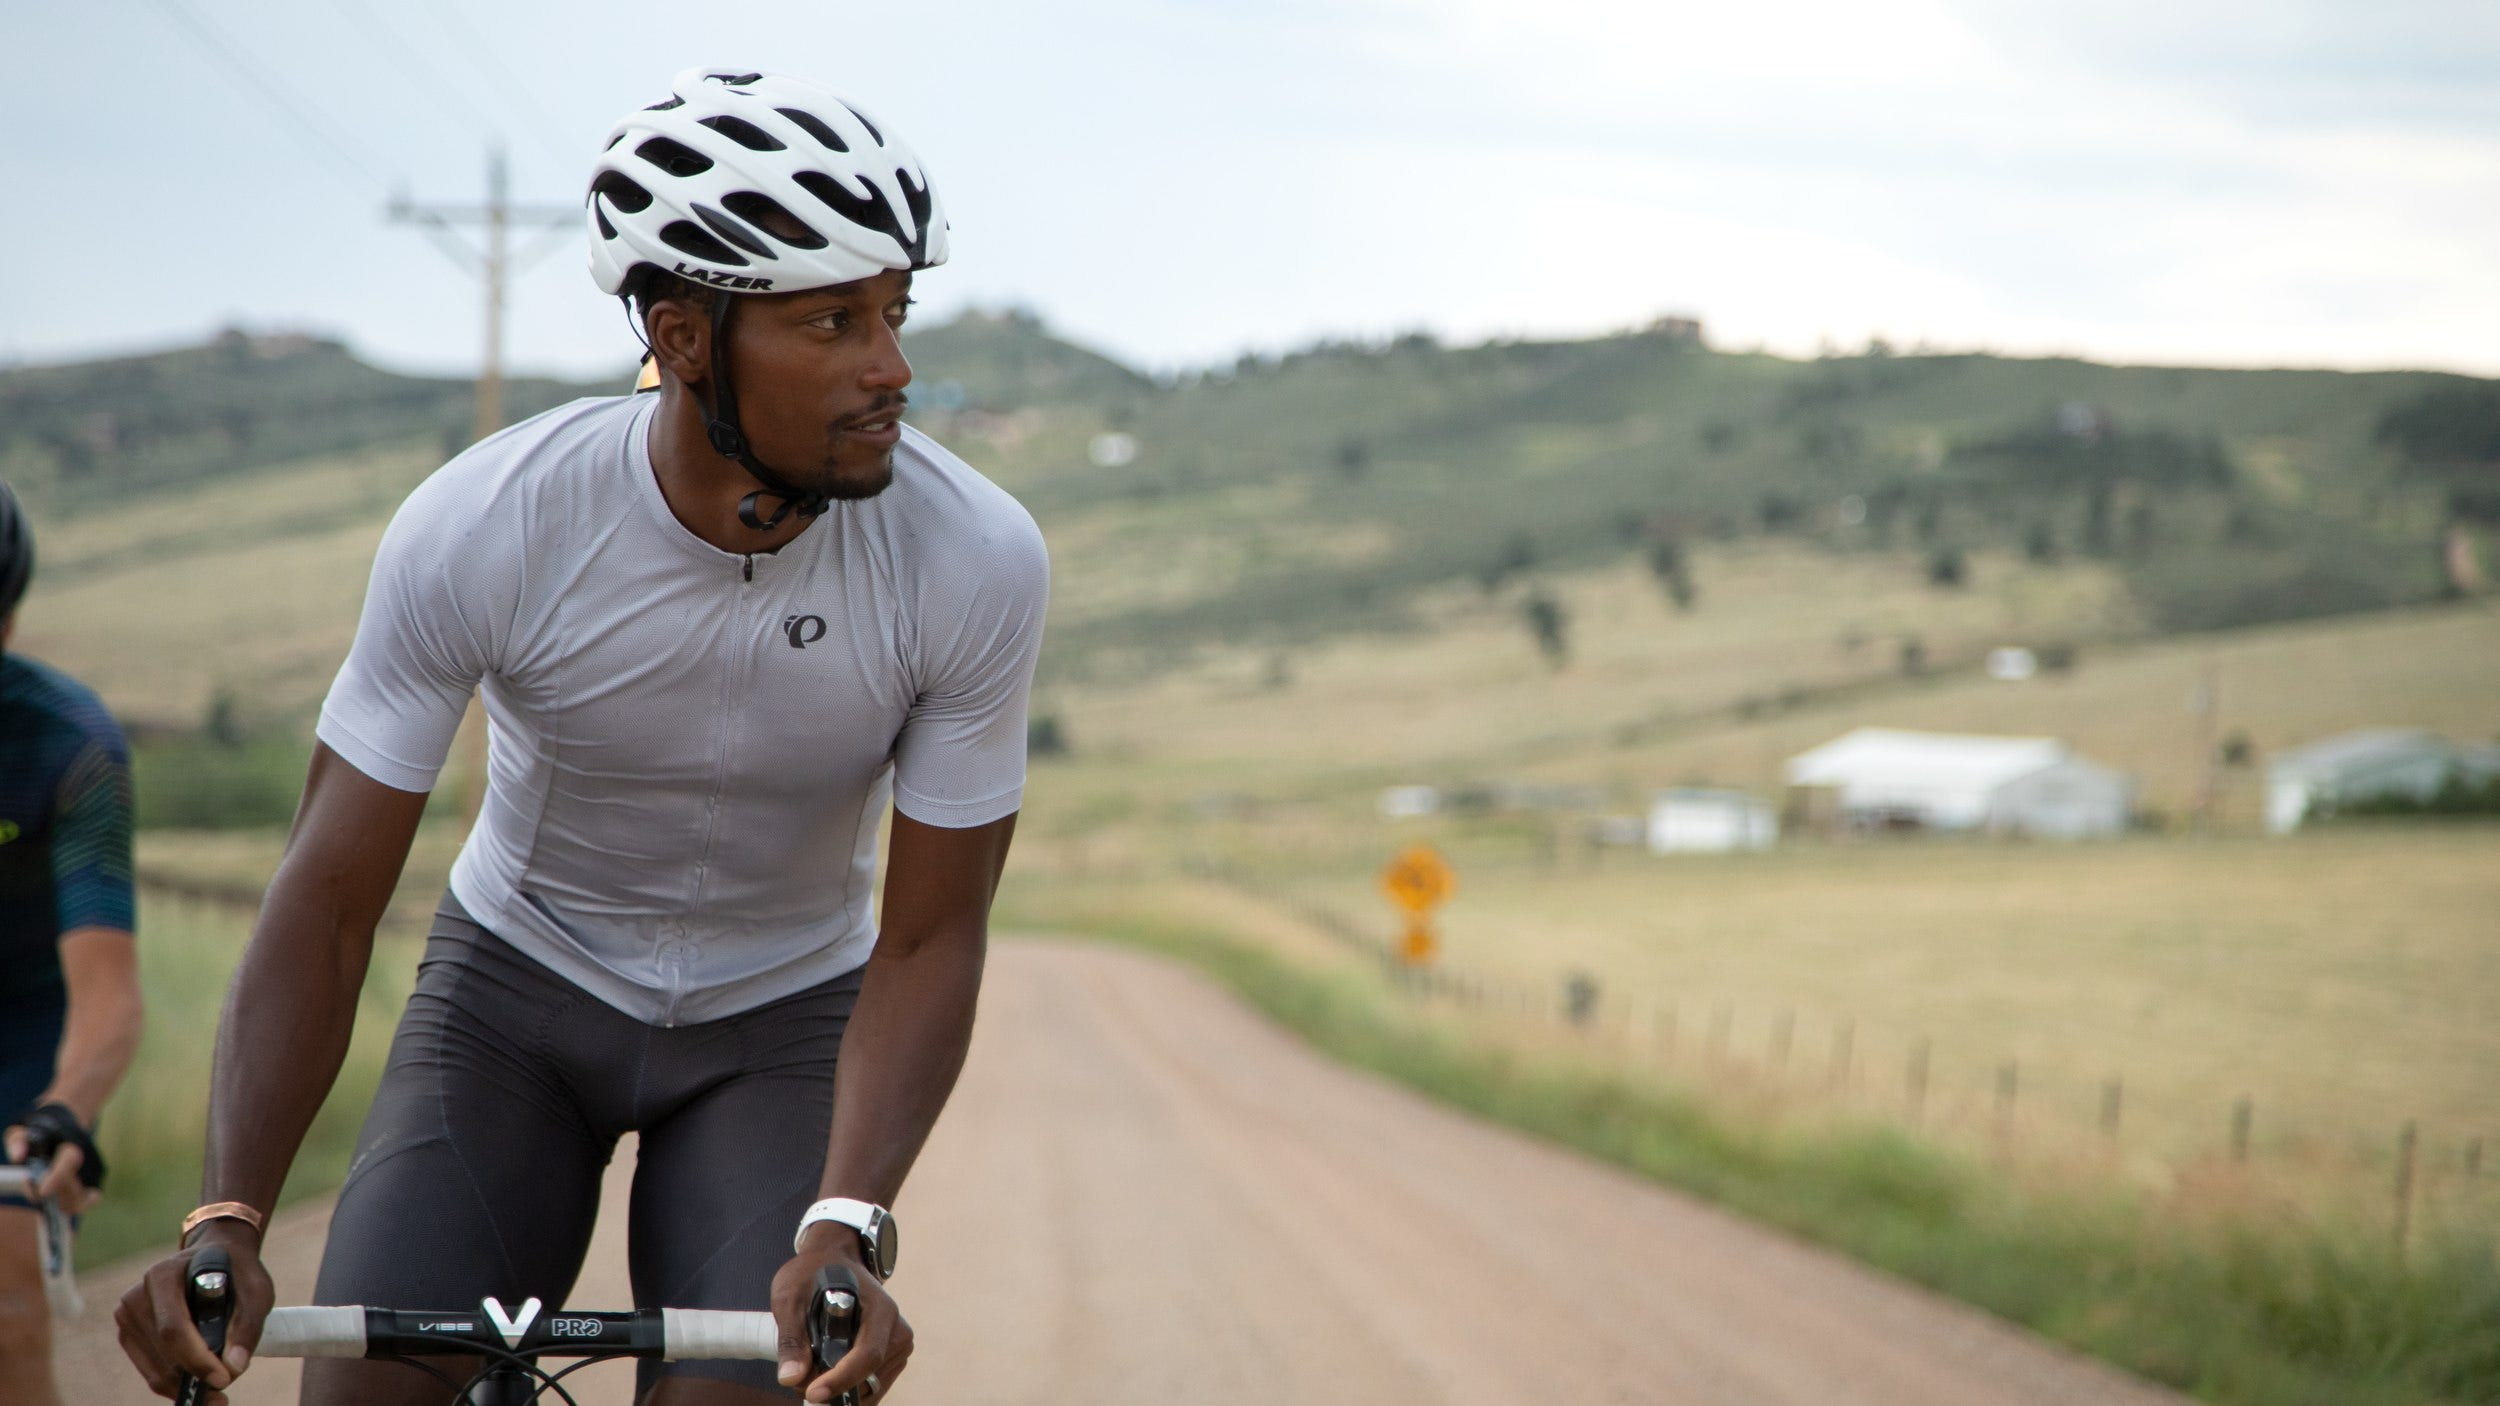 Hot stuff: how to cope with the hot weather on the bike